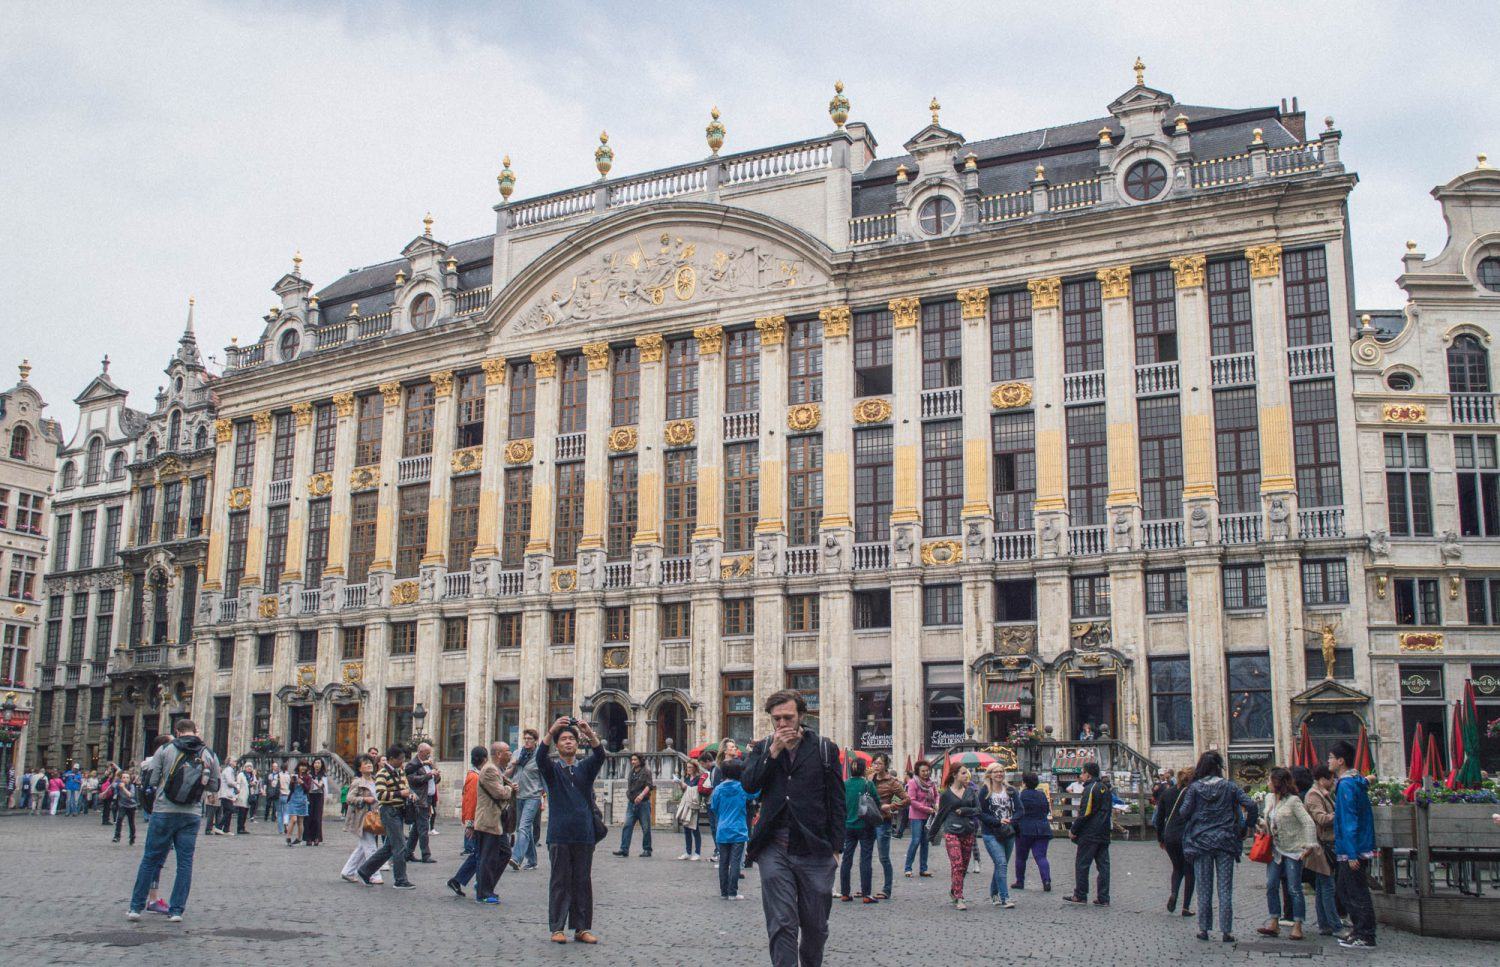 Brussels can be an amazing city if done properly! Be sure to avoid these crucial mistakes to ensure you have the best visit.